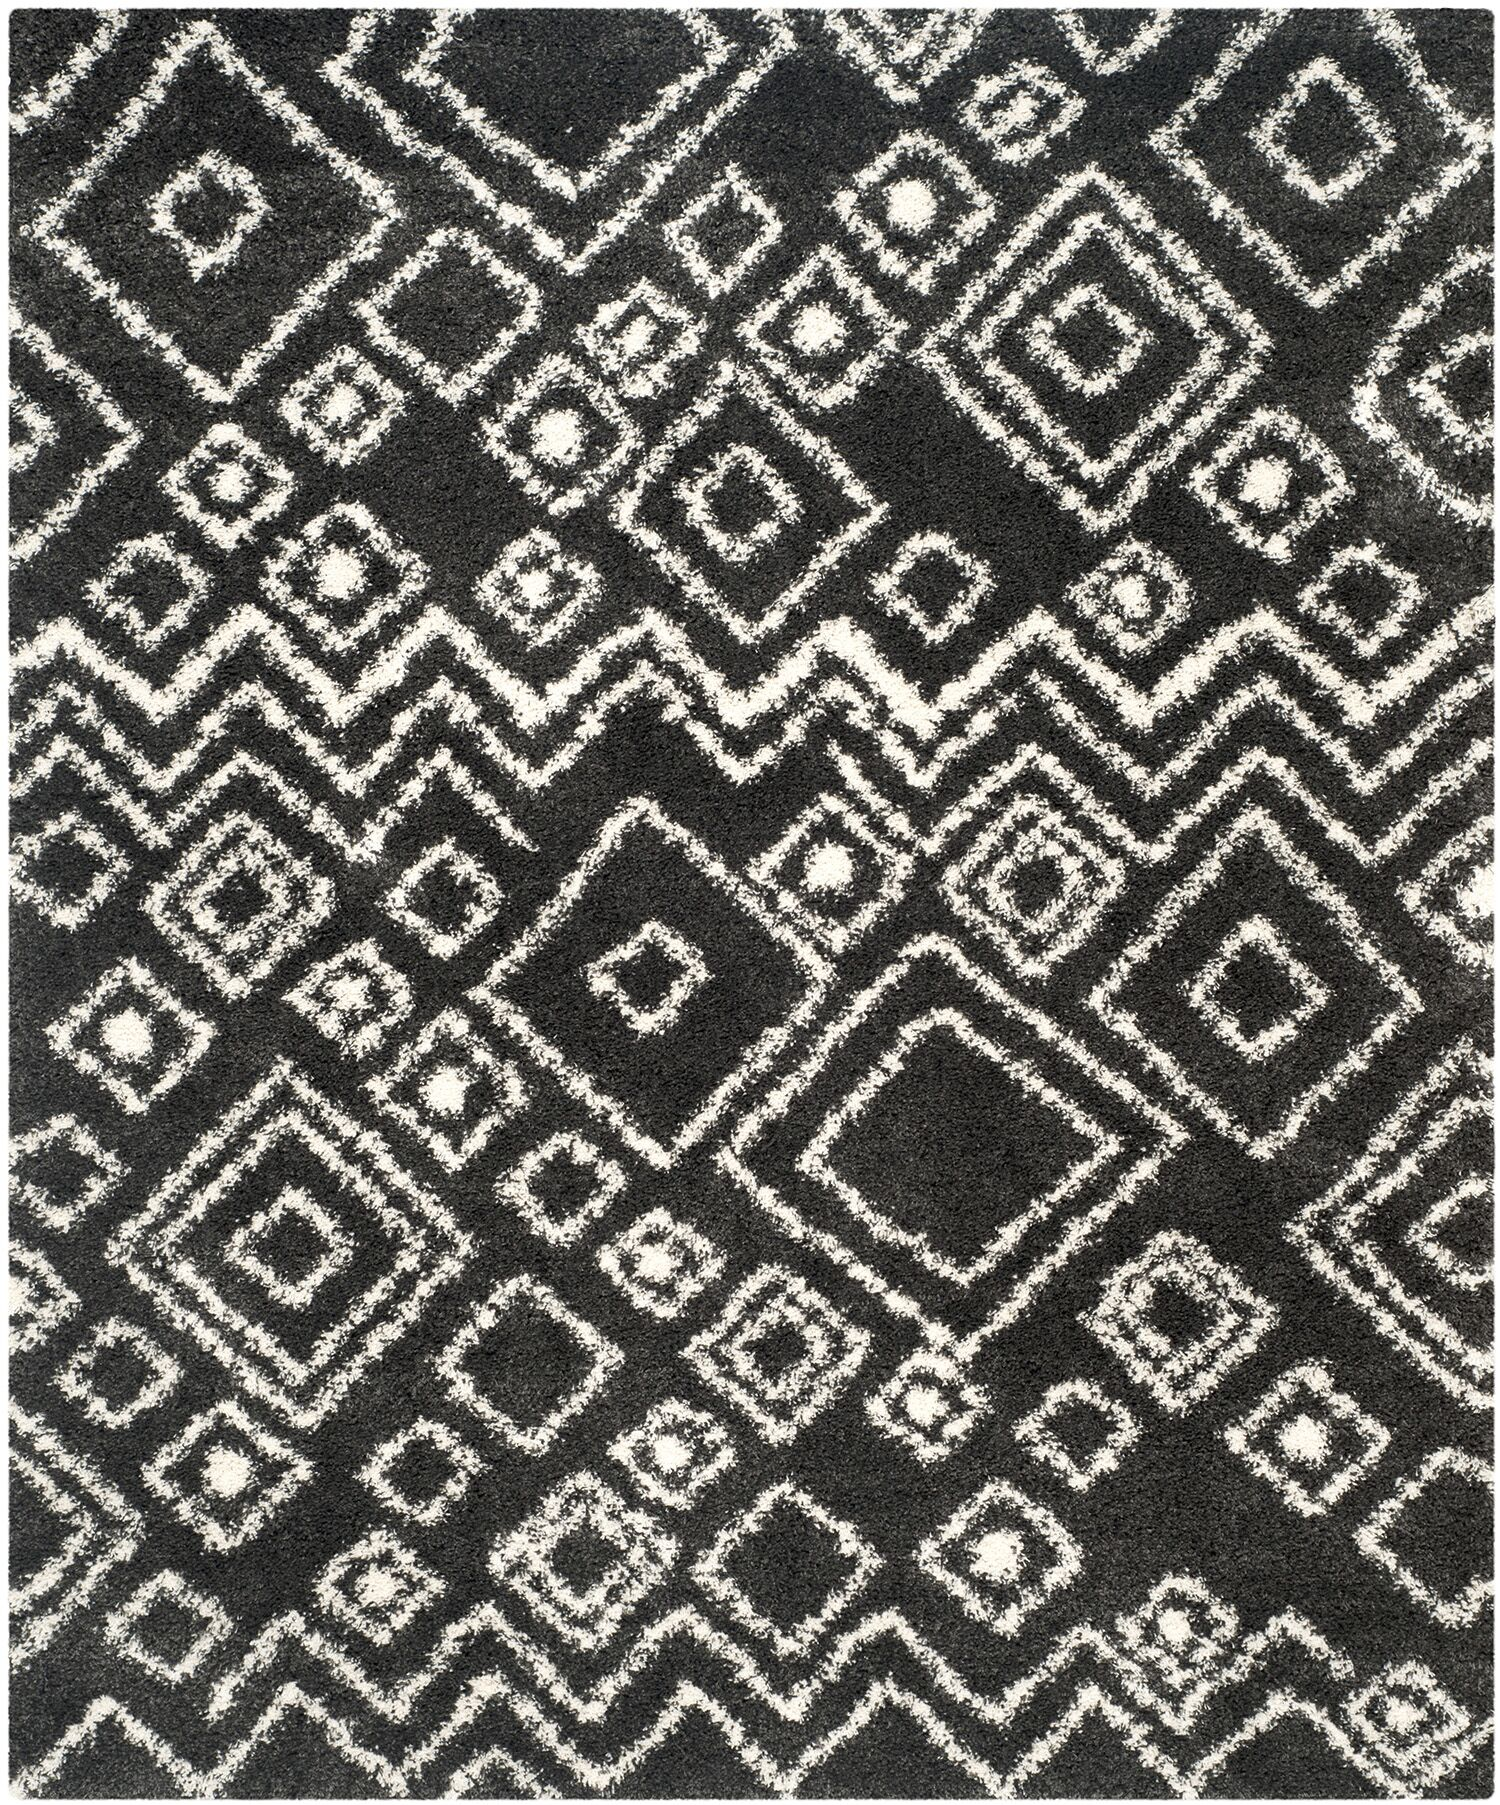 Malibu Charcoal / Ivory Area Rug Rug Size: Rectangle 8' x 10'